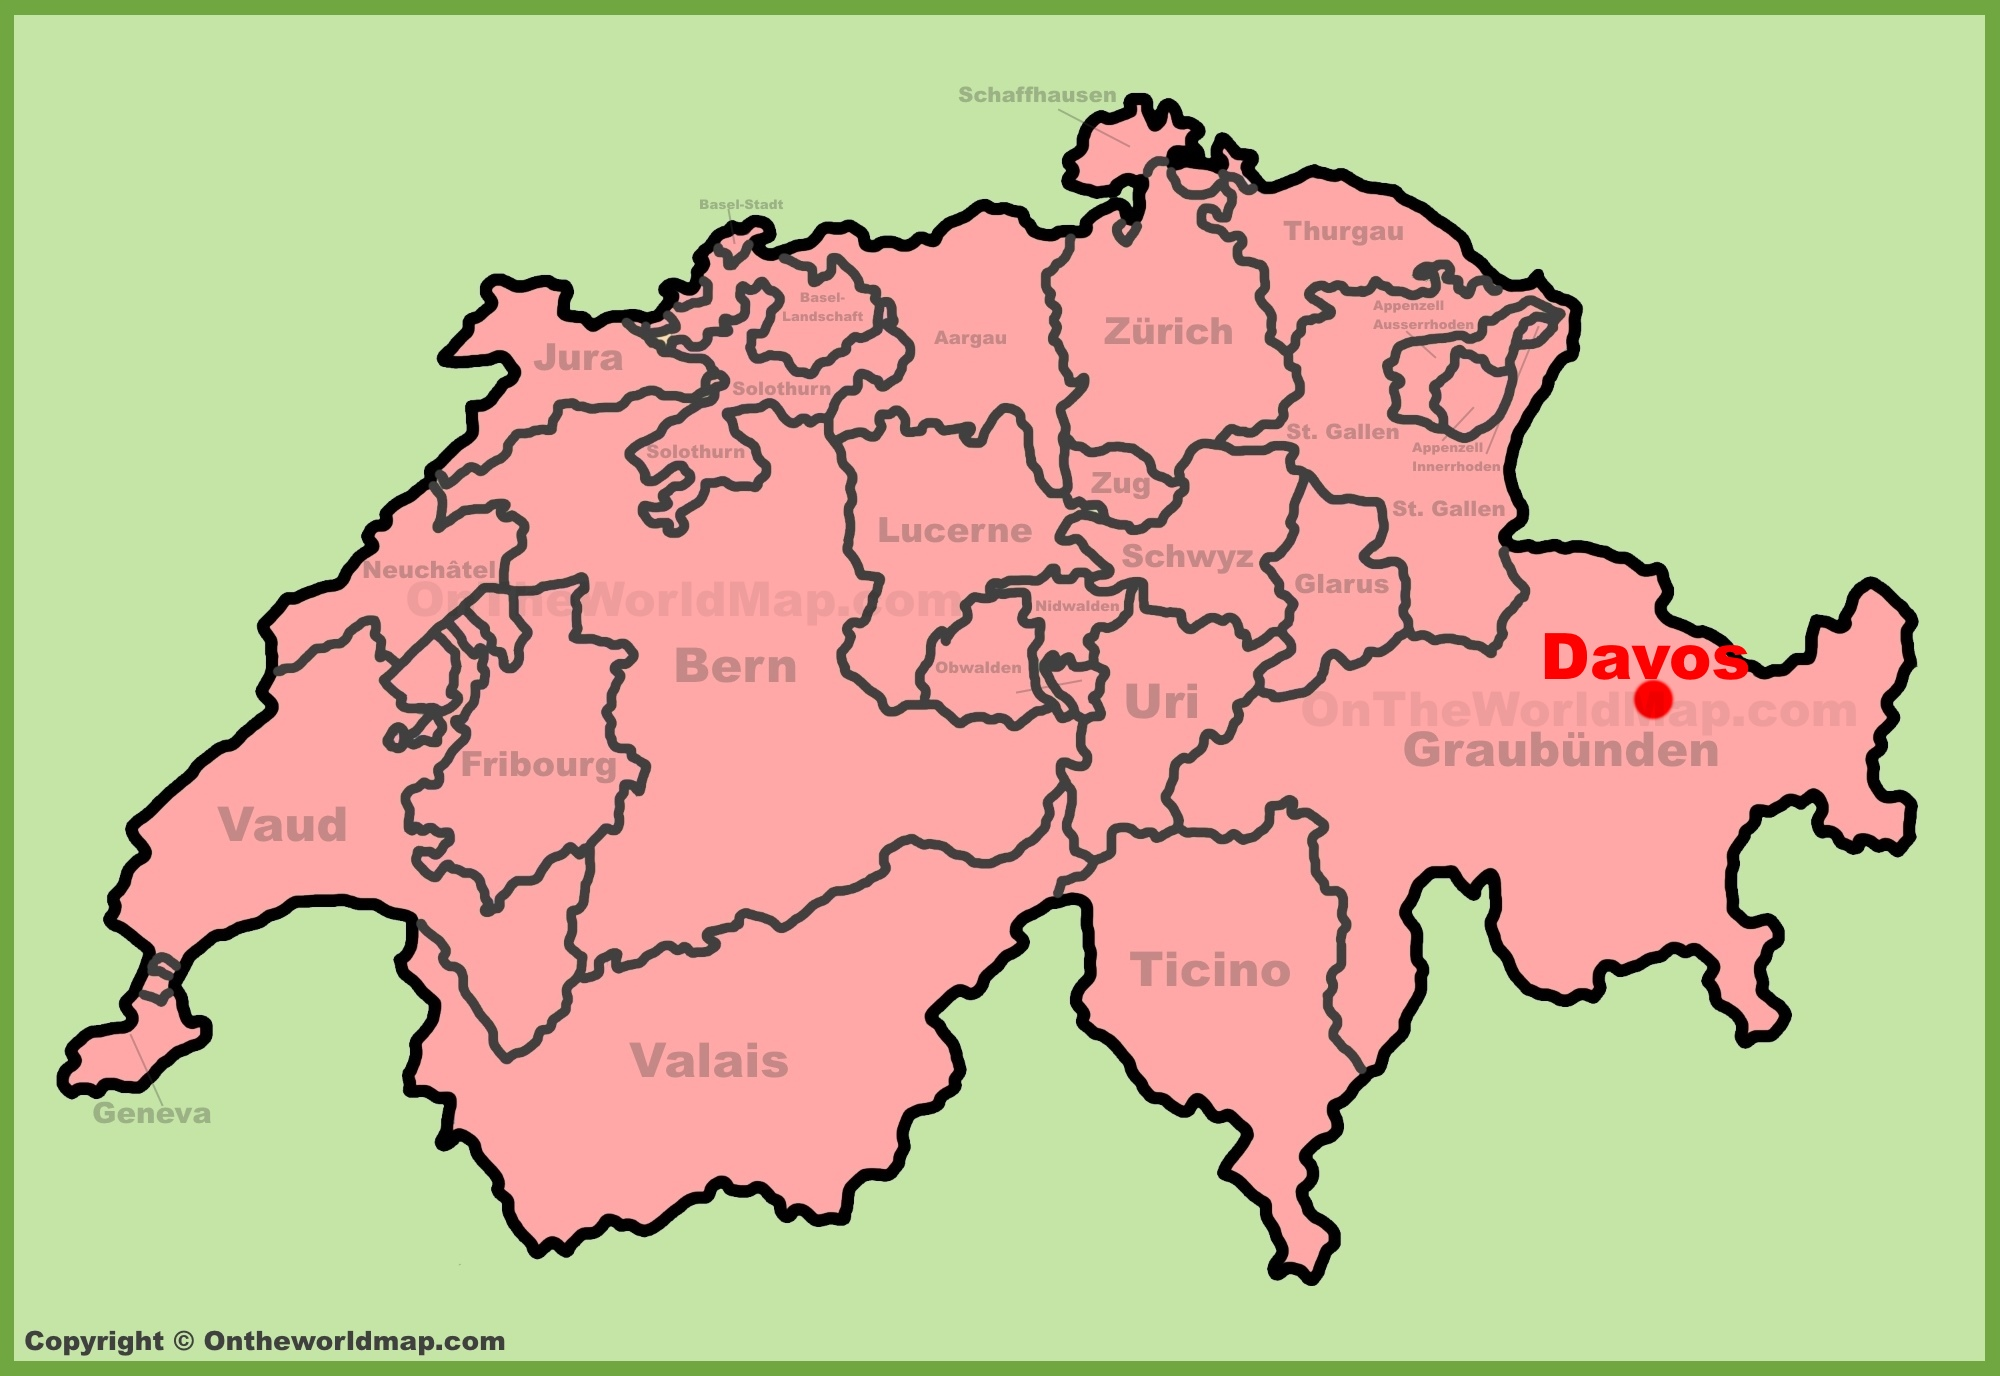 Davos Maps | Switzerland | Maps of Davos